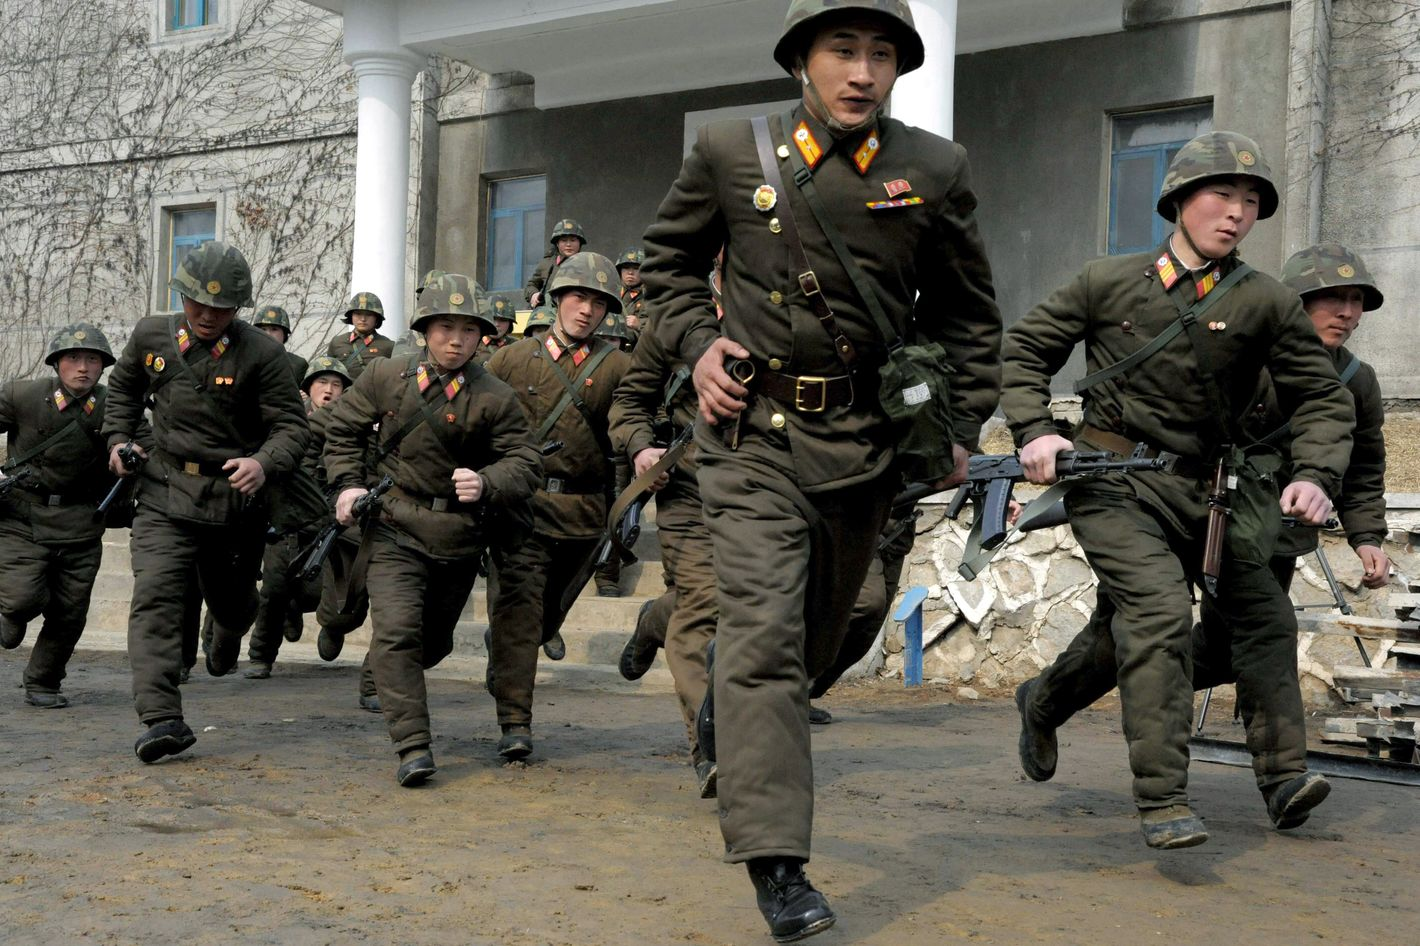 Soldiers of Kim Il Sung Military University perform military training on Wednesday, March 6, 2013, in Pyongyang, North Korea. North Korea's military is vowing to cancel the 1953 cease-fire that ended the Korean War, straining already frayed ties between Washington and Pyongyang as the United Nations moves to impose punishing sanctions over the North's recent nuclear test.